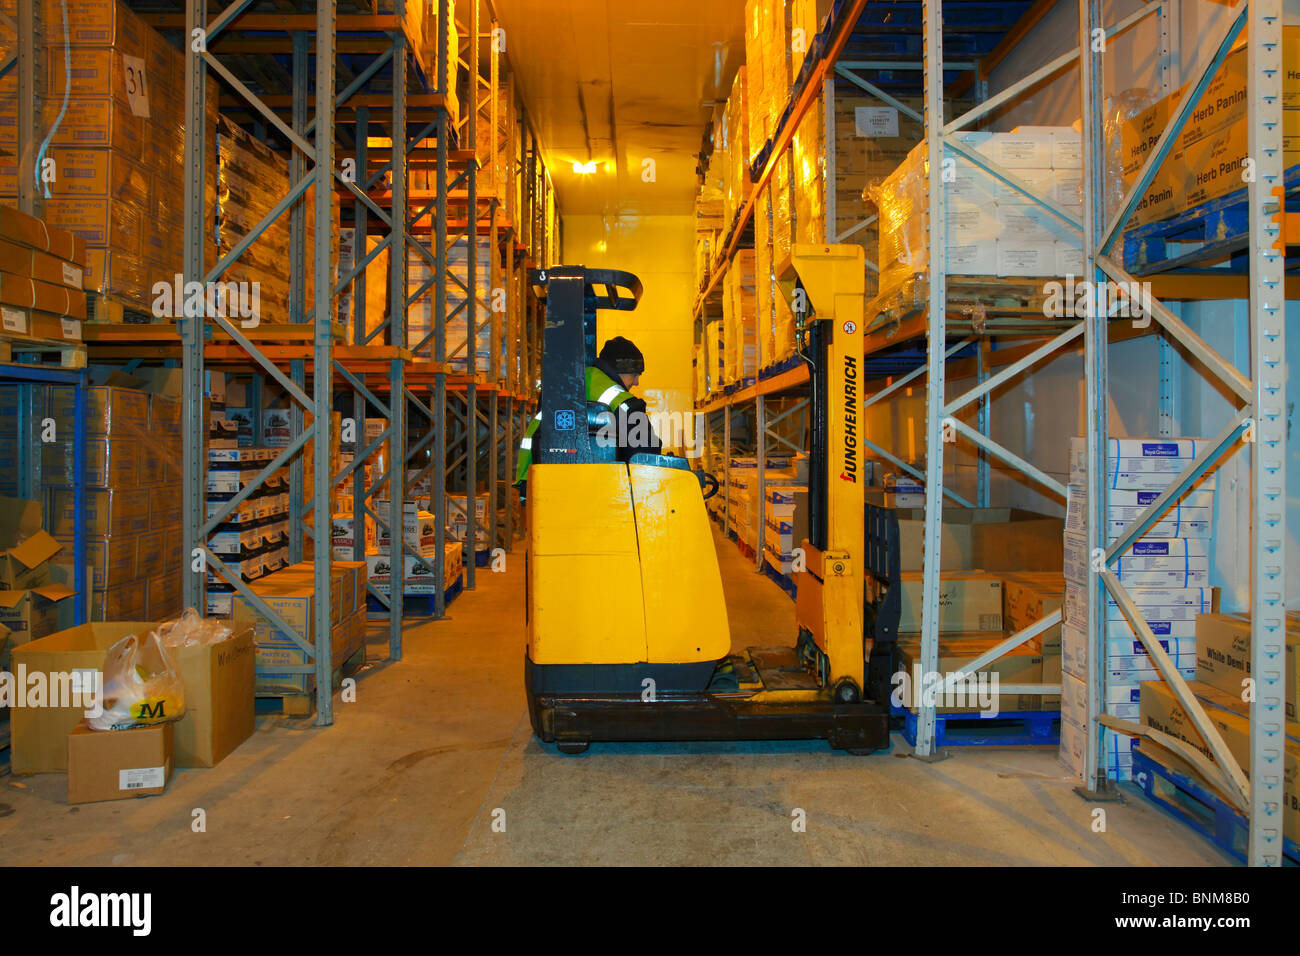 Fork Lift Stock Photos & Fork Lift Stock Images - Alamy